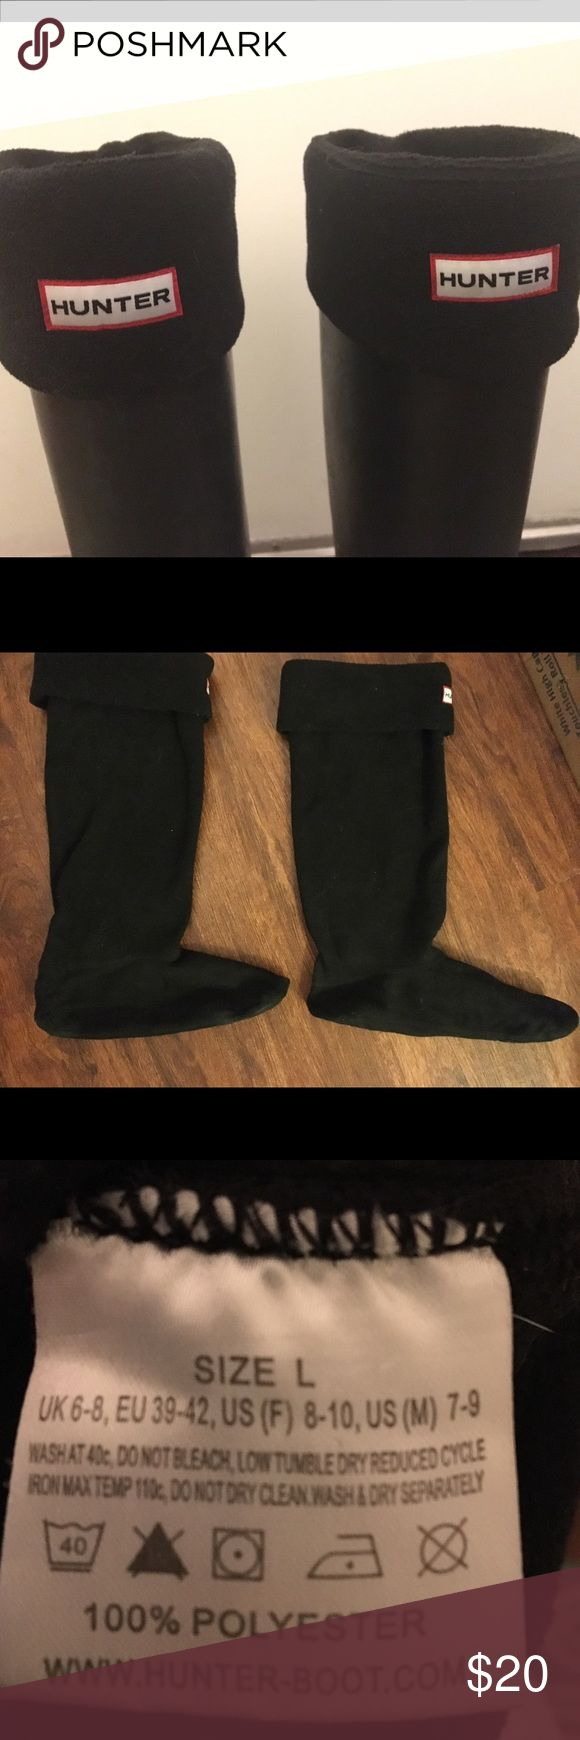 Tall black Hunter boot socks Black fleece boot socks for Hunter brand boots. Good condition. Gently worn. Can even be worn with non-hunter brand boots (cheap alternative to spending $150 on rain boots). Keep your feet warm and prevent the annoying flapping sound when you walk in some rain boots. Hunter Boots Accessories Hosiery & Socks